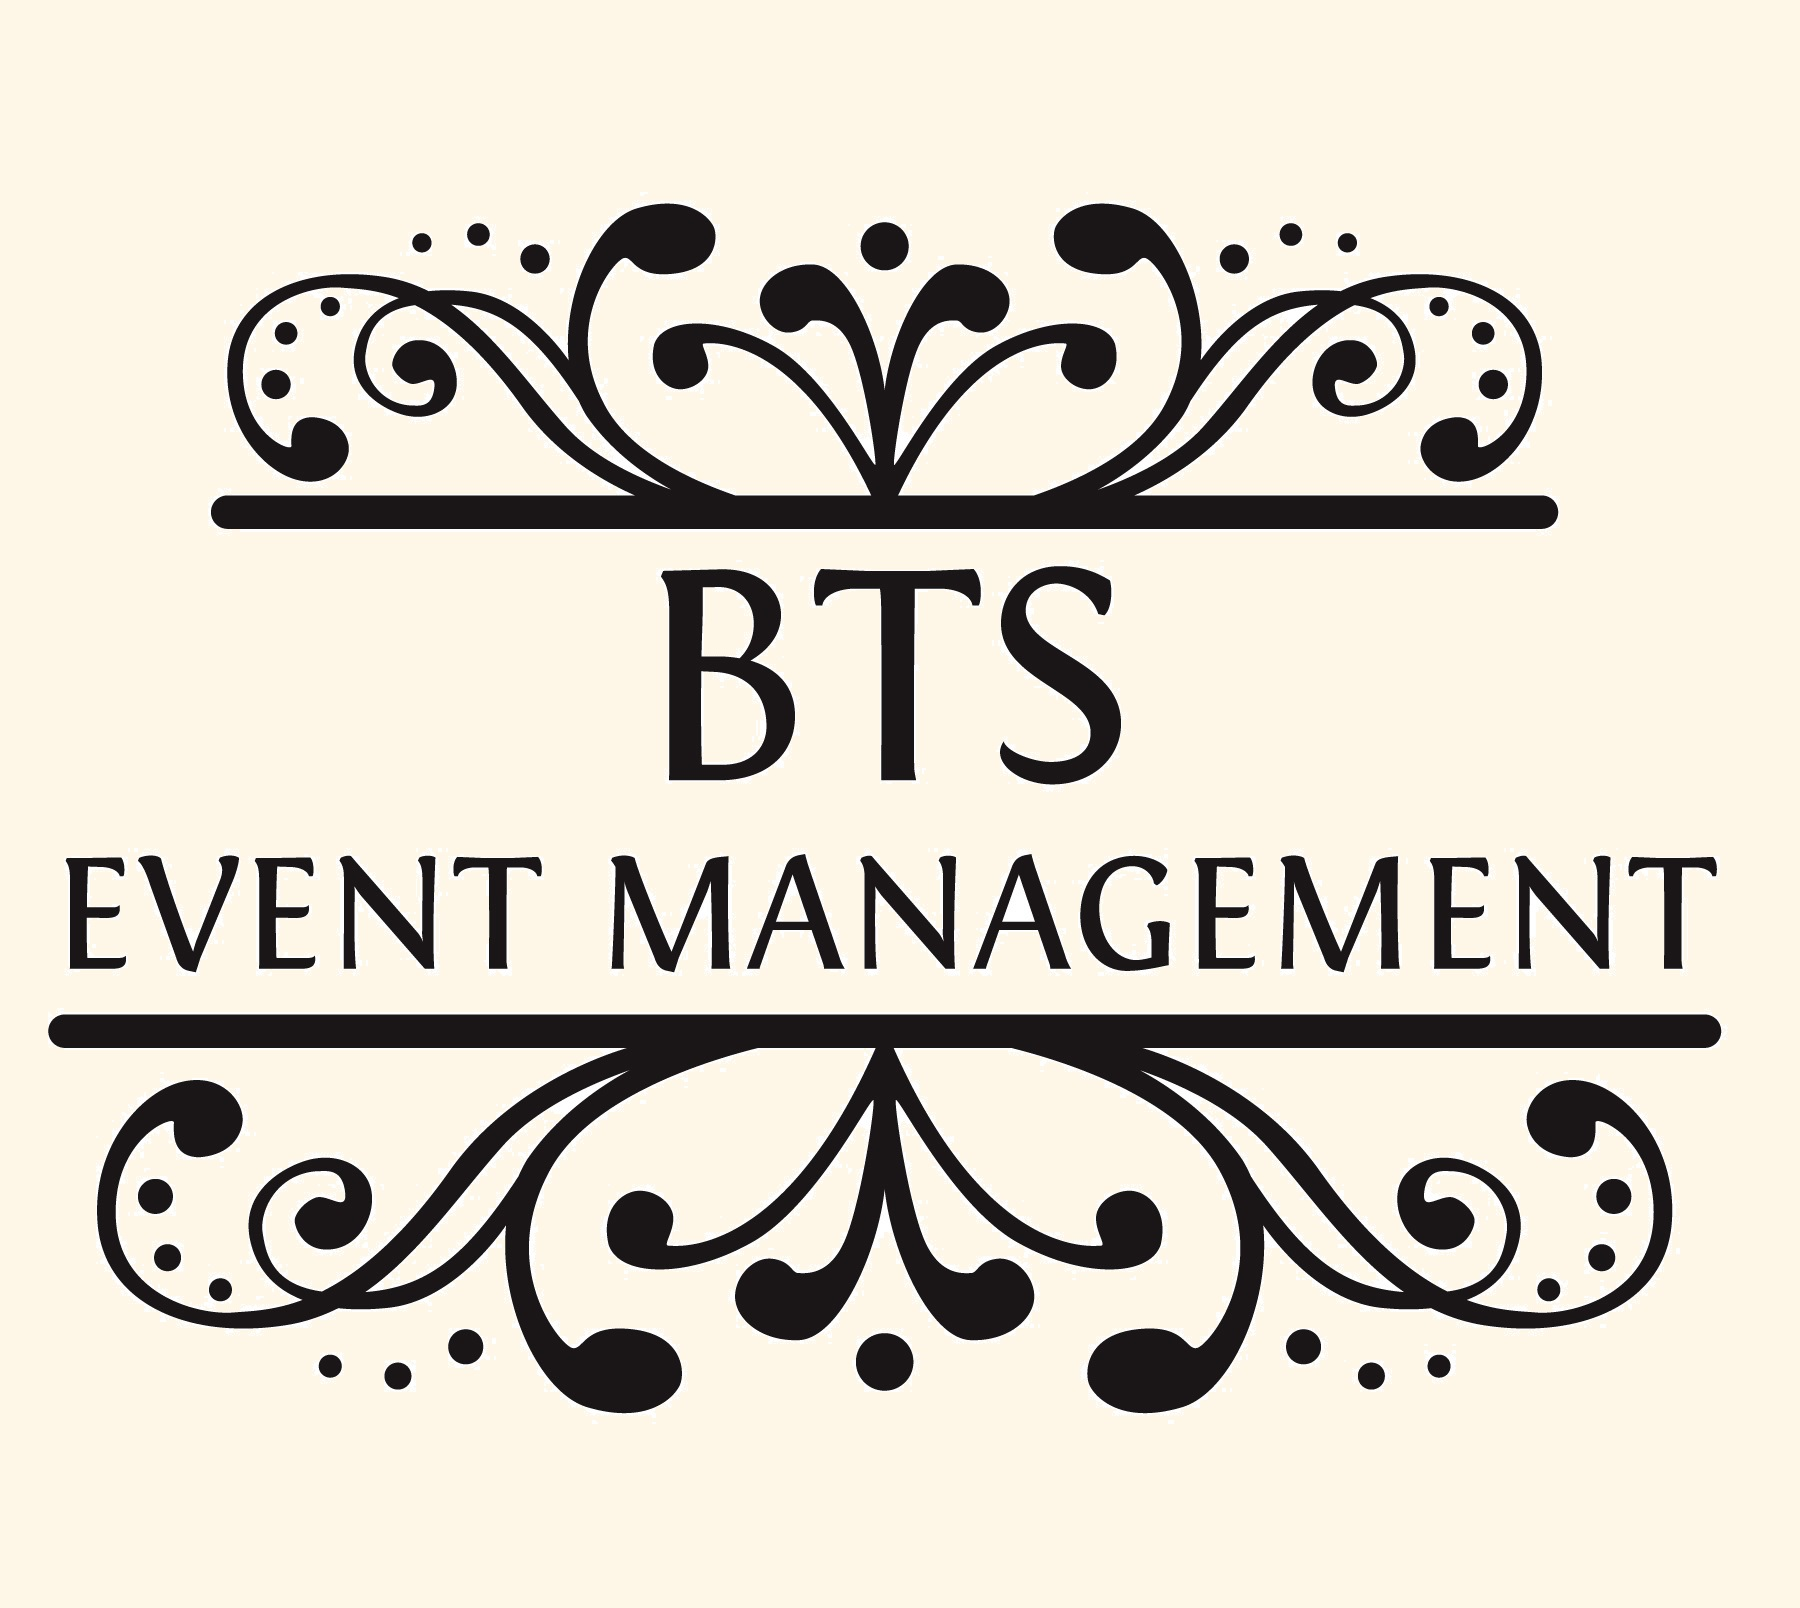 BTS Event Management